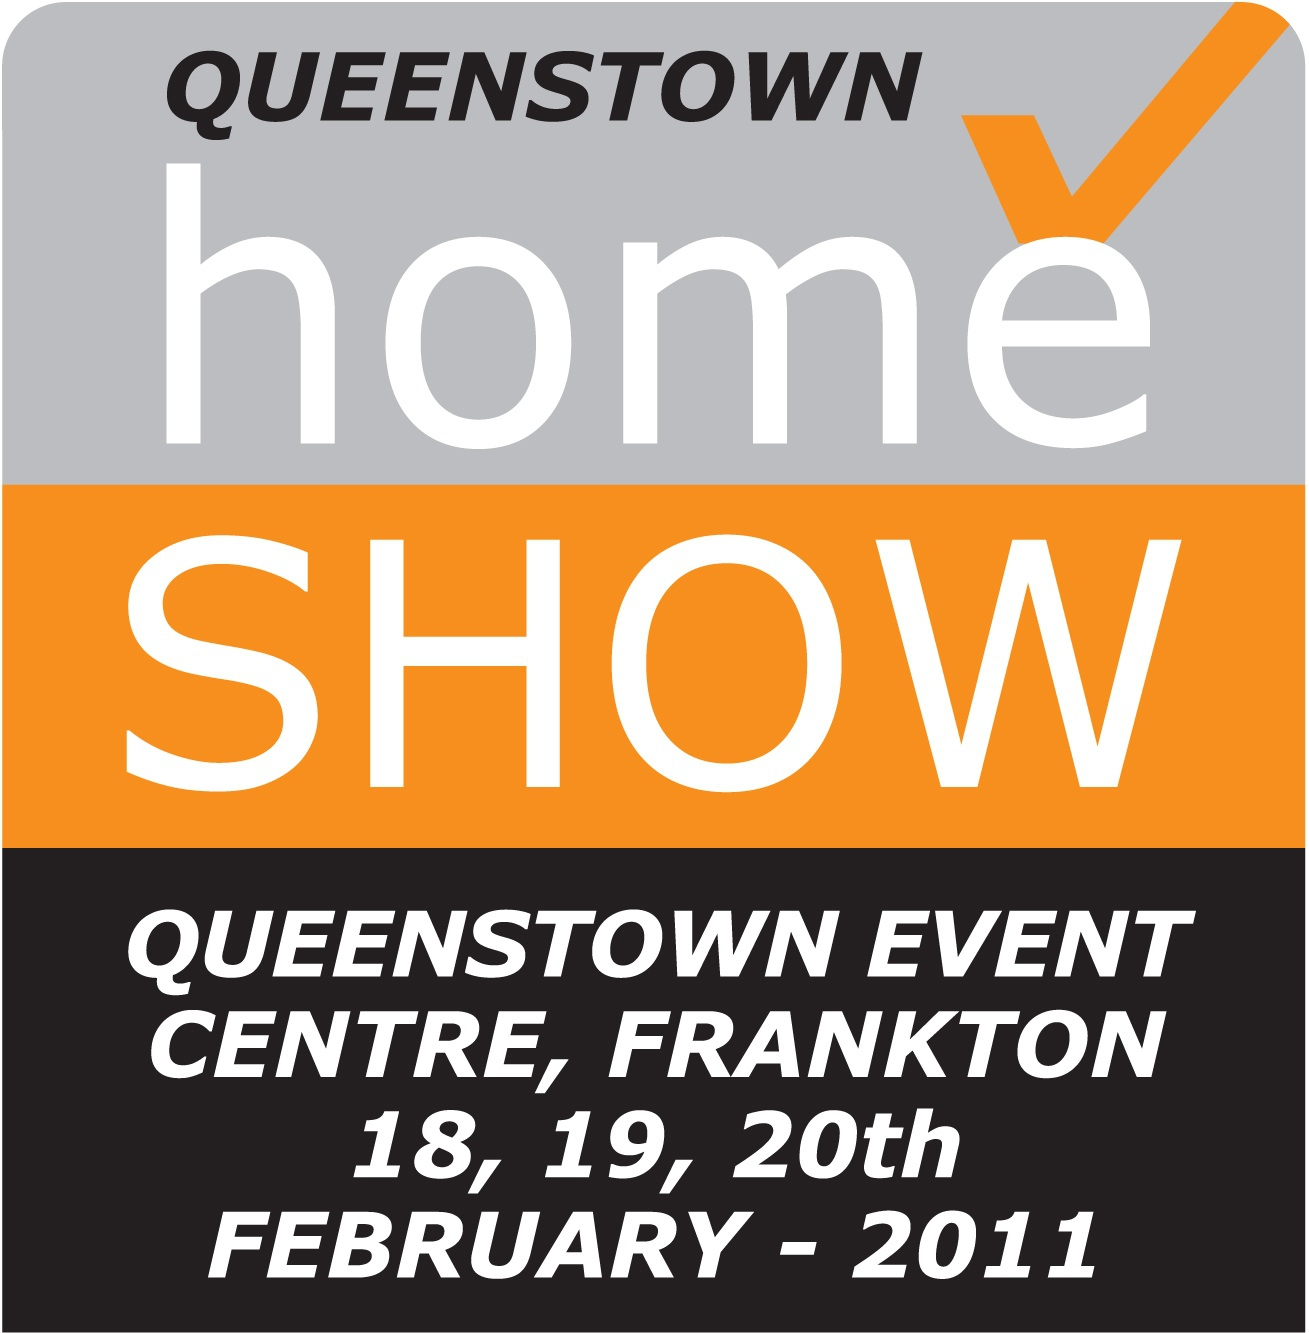 The 2017 Queenstown Home Show